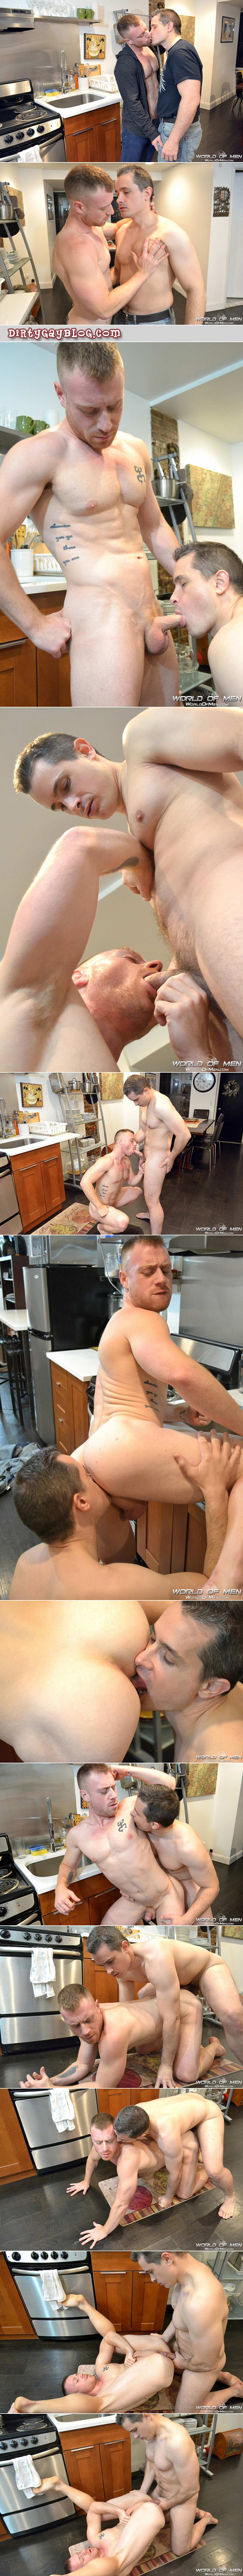 Clean cut guy fucks a horny ginger muscle stud on the kitchen floor.